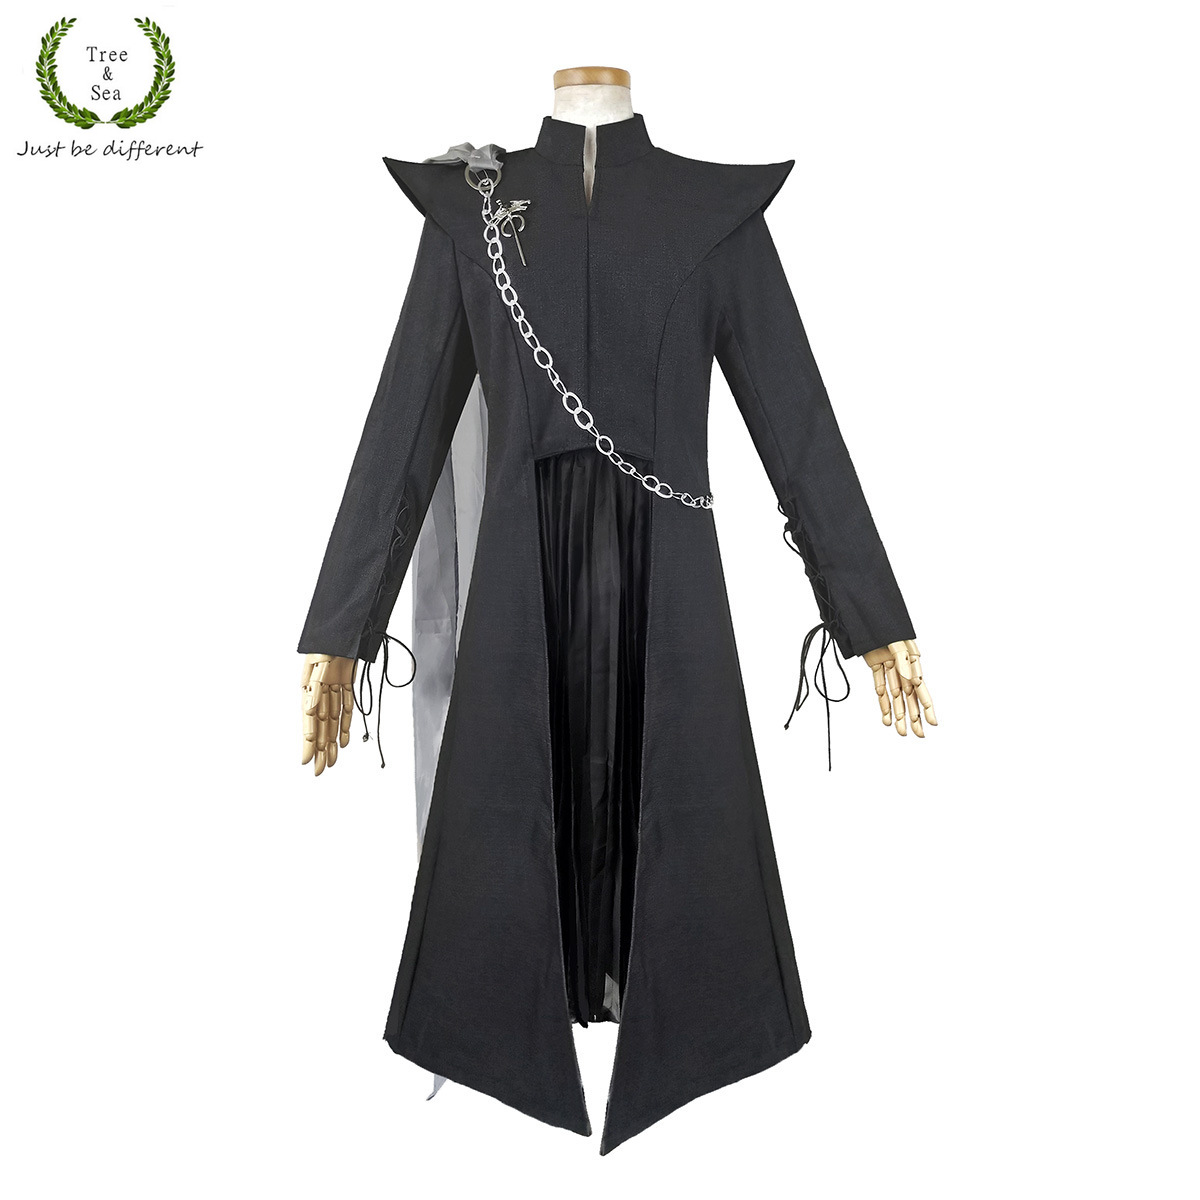 Halloween Women Game of Thrones Daenerys Targaryen costume Mother of Dragons Black suits dress with cape any size